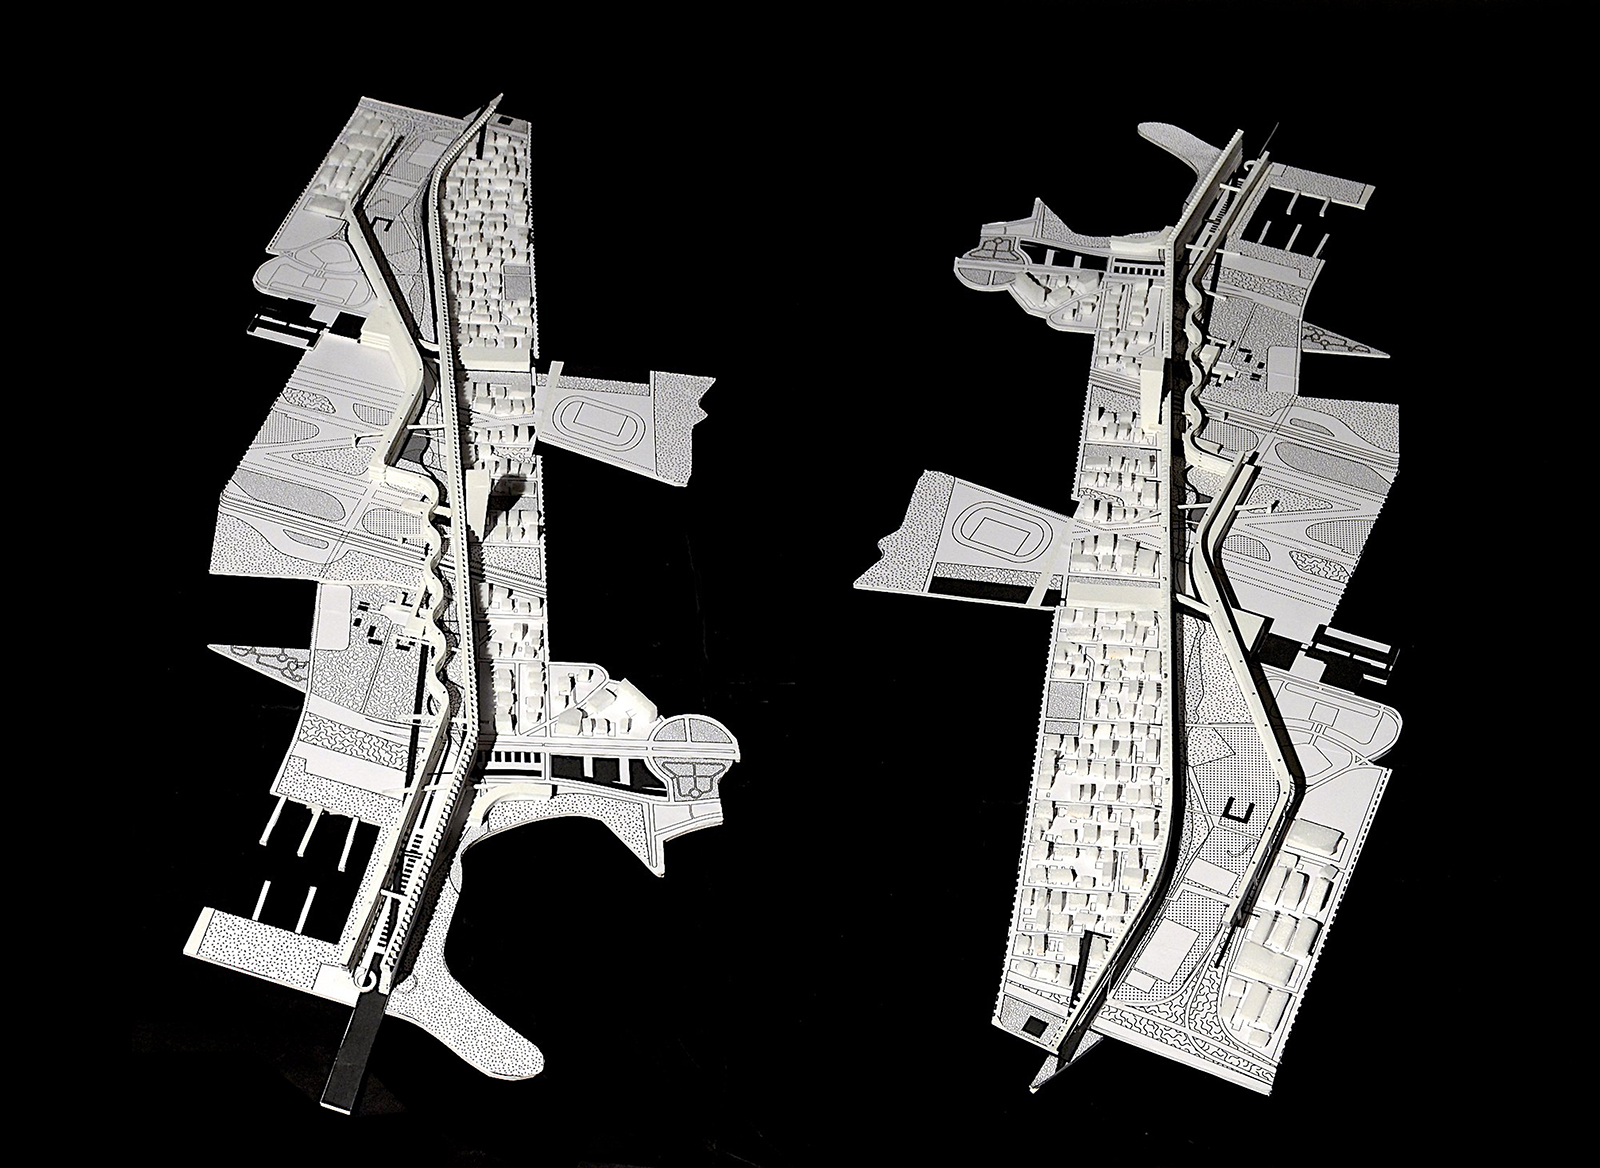 Pair of study models looking at the two endpoints of the HEL insertion with relationships to the mountain suburbs and the sea